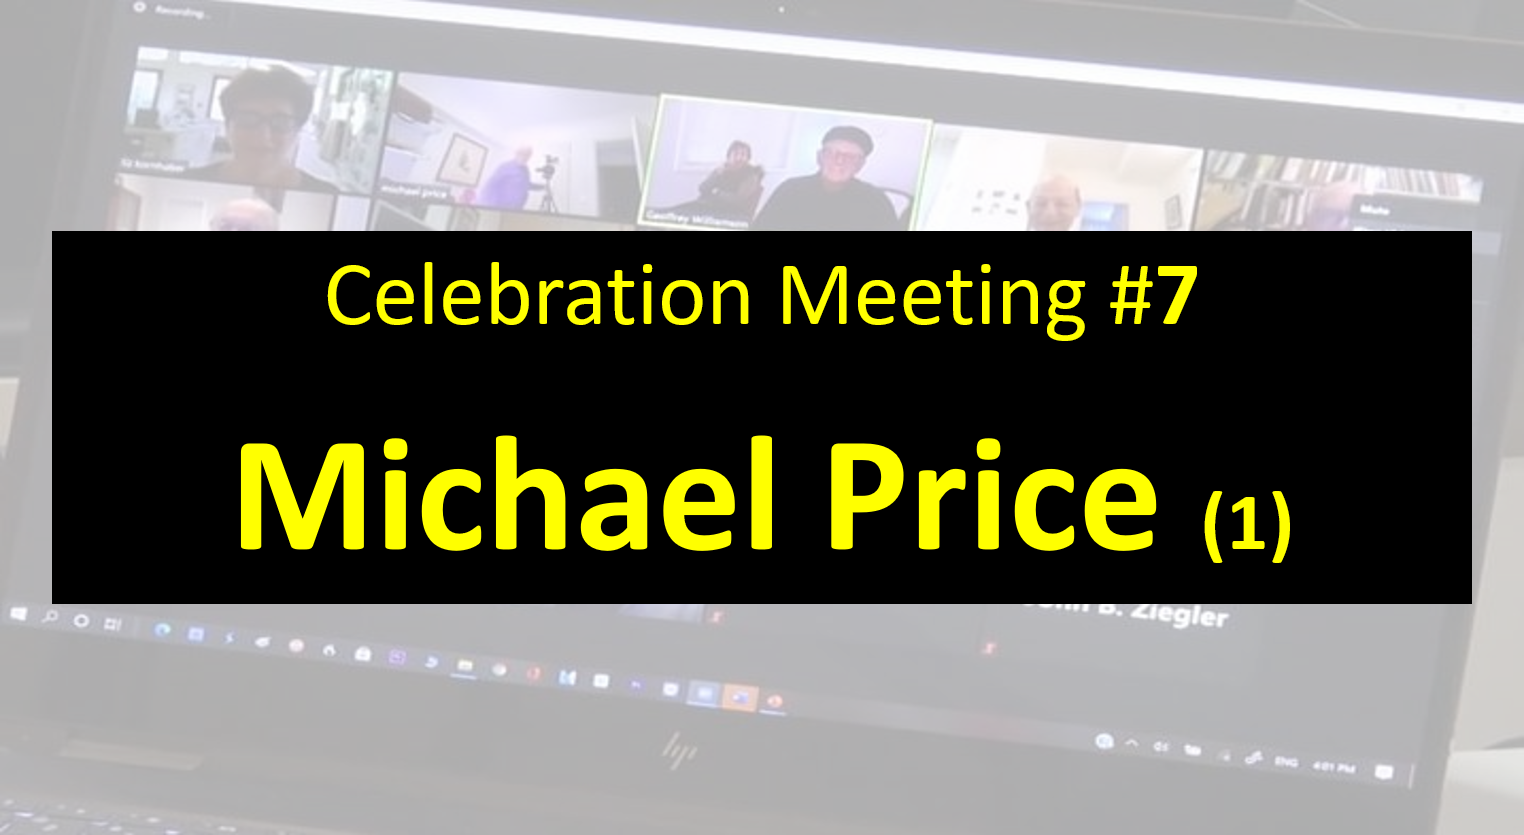 Celebration Meeting - #7 Michael Price Part 1